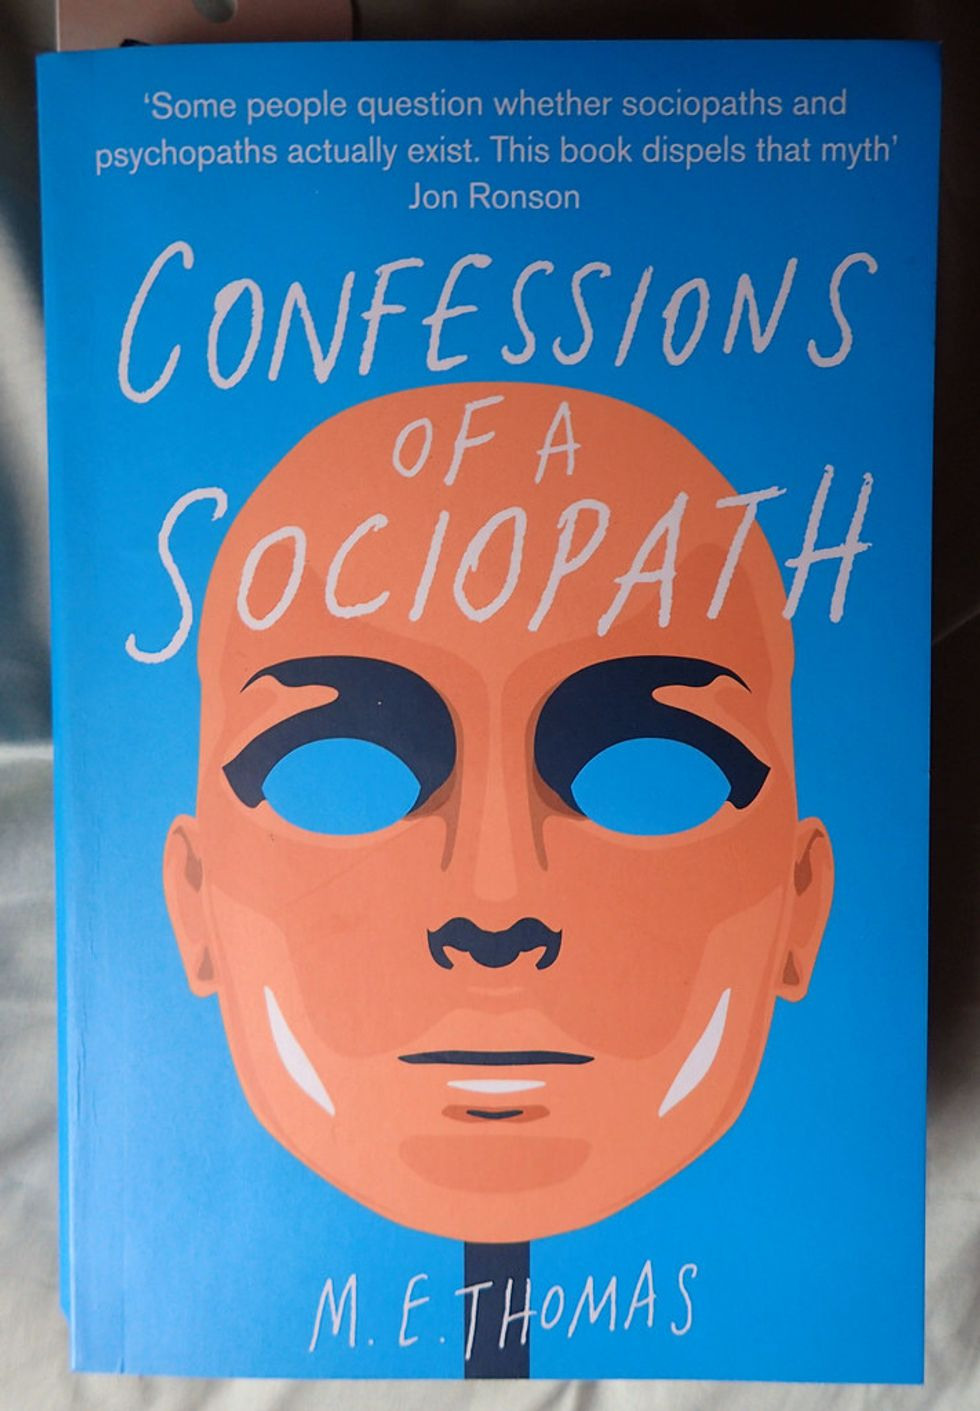 People Who Have Been Romantically Involved With A Sociopath Share Their Experiences